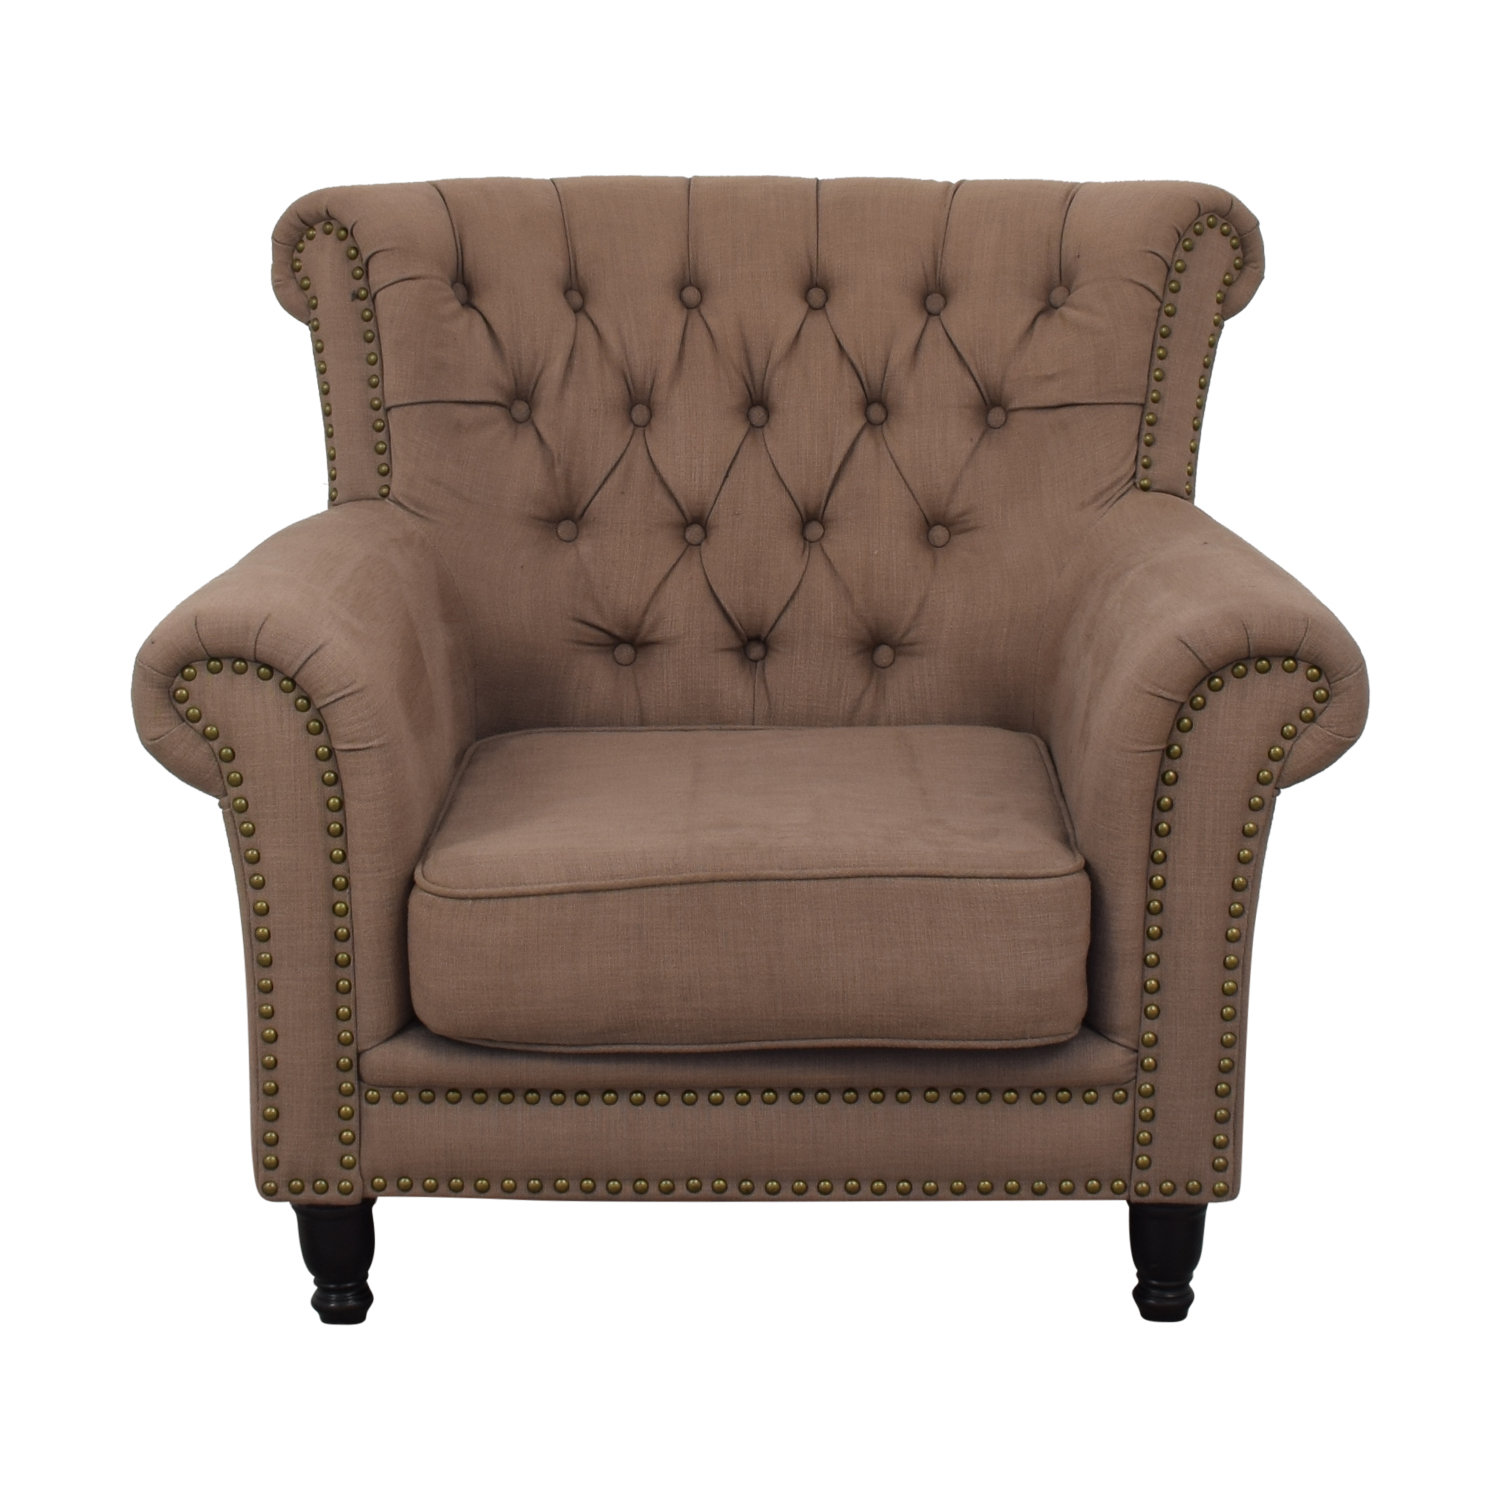 ABC Carpet & Home ABC Carpet & Home Tufted Nailhead Arm Chair pa